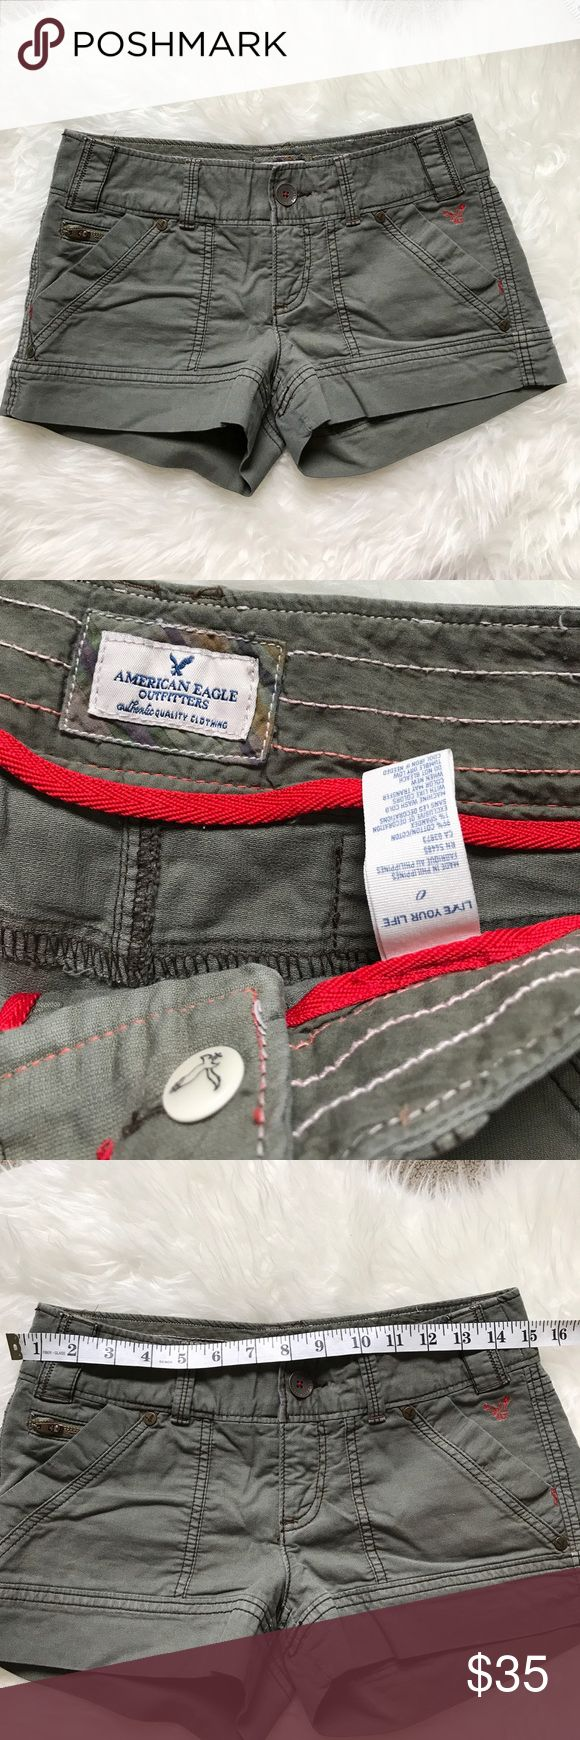 American Eagle Short Size Size 0 Excellent Condition 😍 No trade 🚫 No model 💃🏻 American Eagle Outfitters Shorts